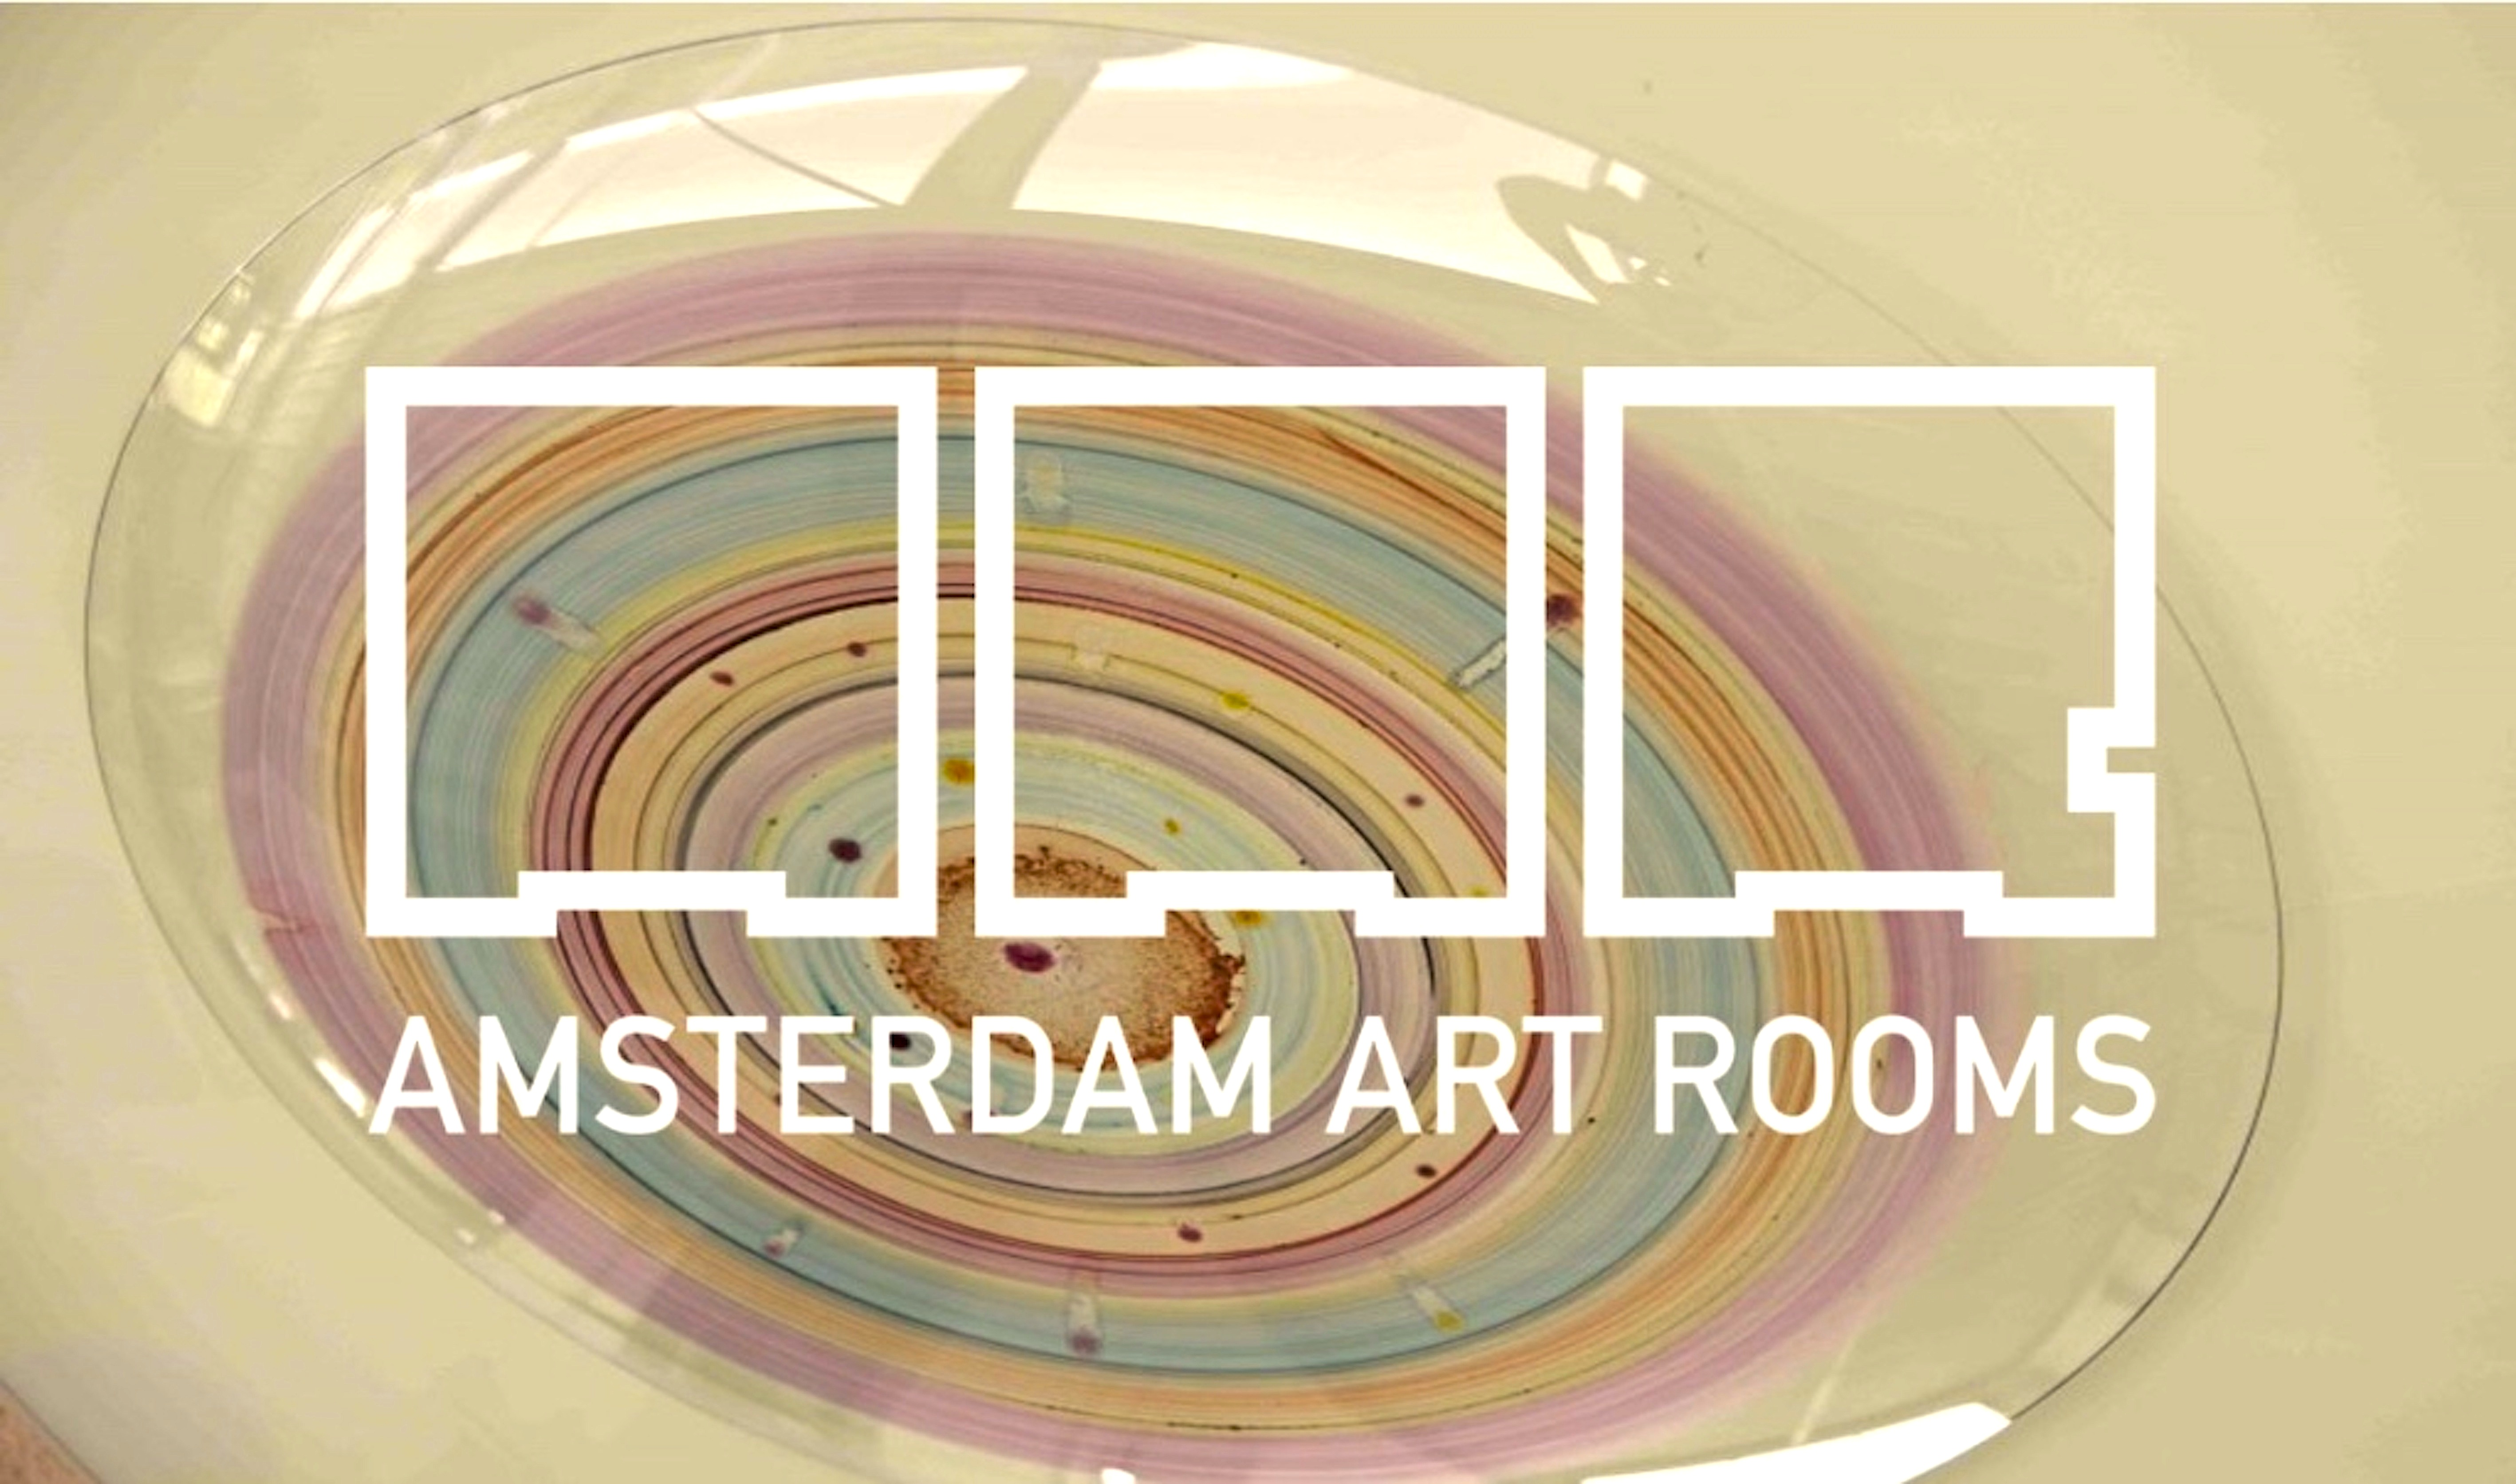 Amsterdam Art Rooms